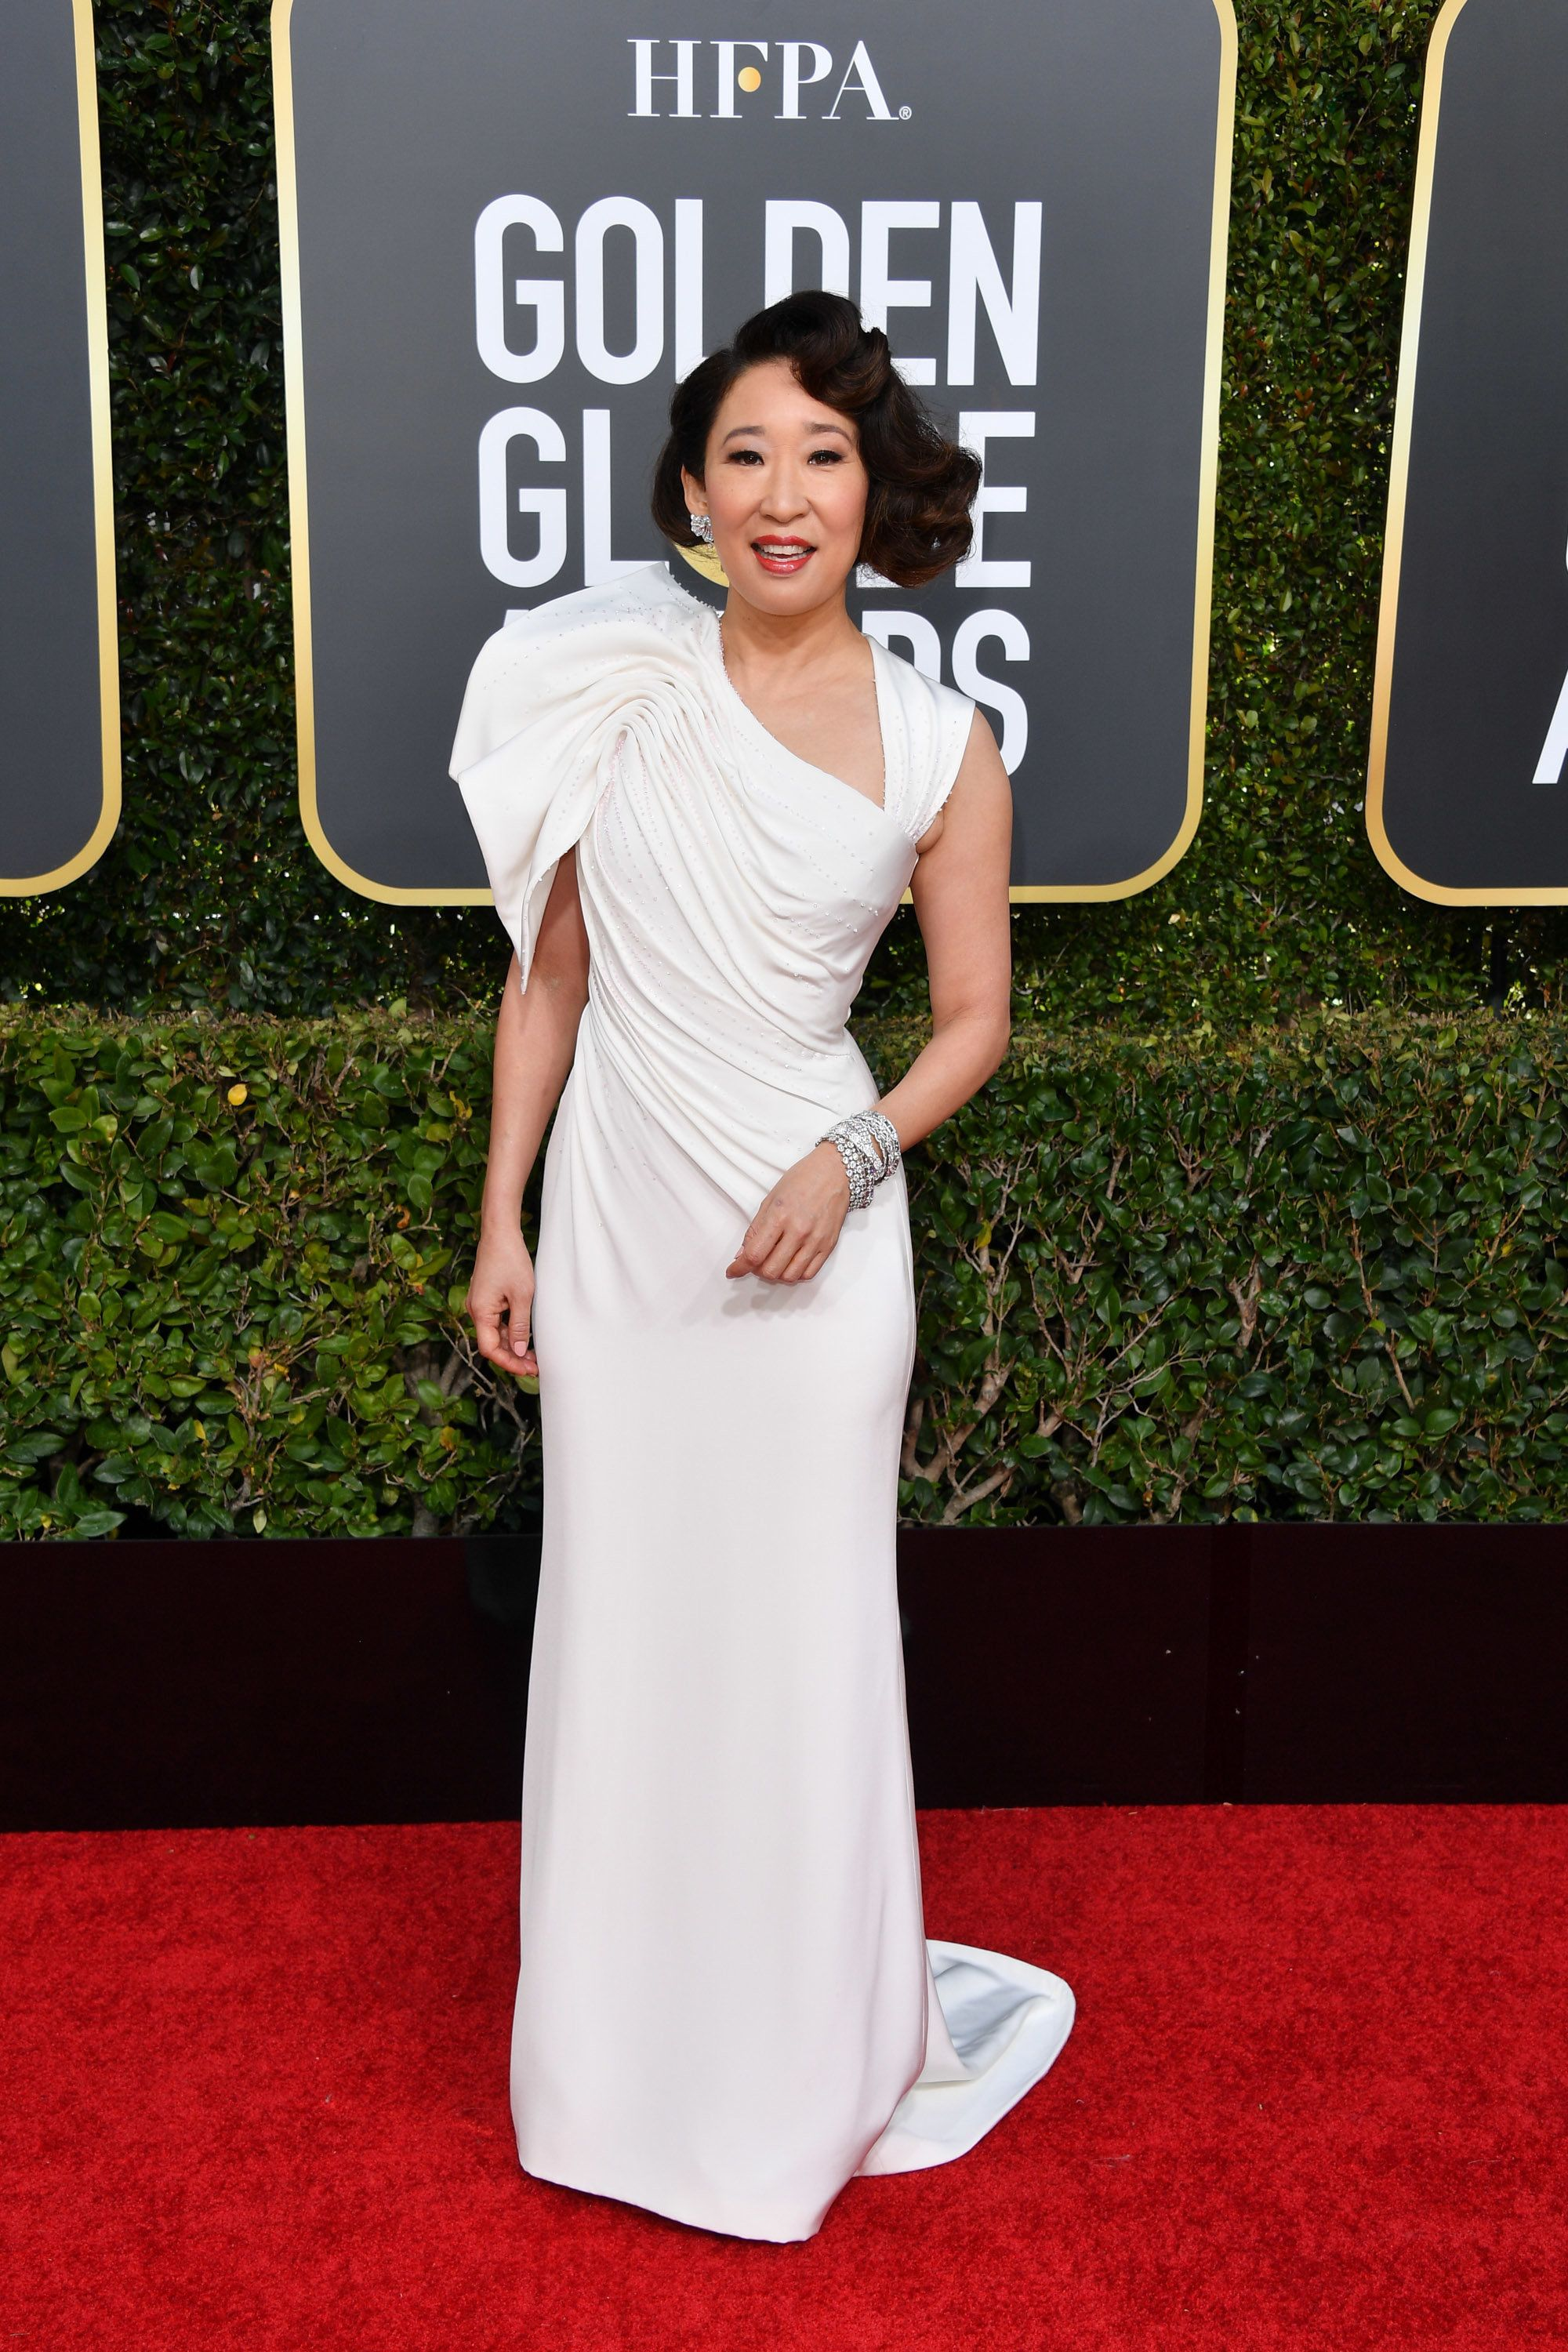 BEVERLY HILLS, CALIFORNIA - JANUARY 06: Host Sandra Oh attends the 76th Annual Golden Globe Awards held at The Beverly Hilton Hotel on January 06, 2019 in Beverly Hills, California. (Photo by George Pimentel/WireImage)